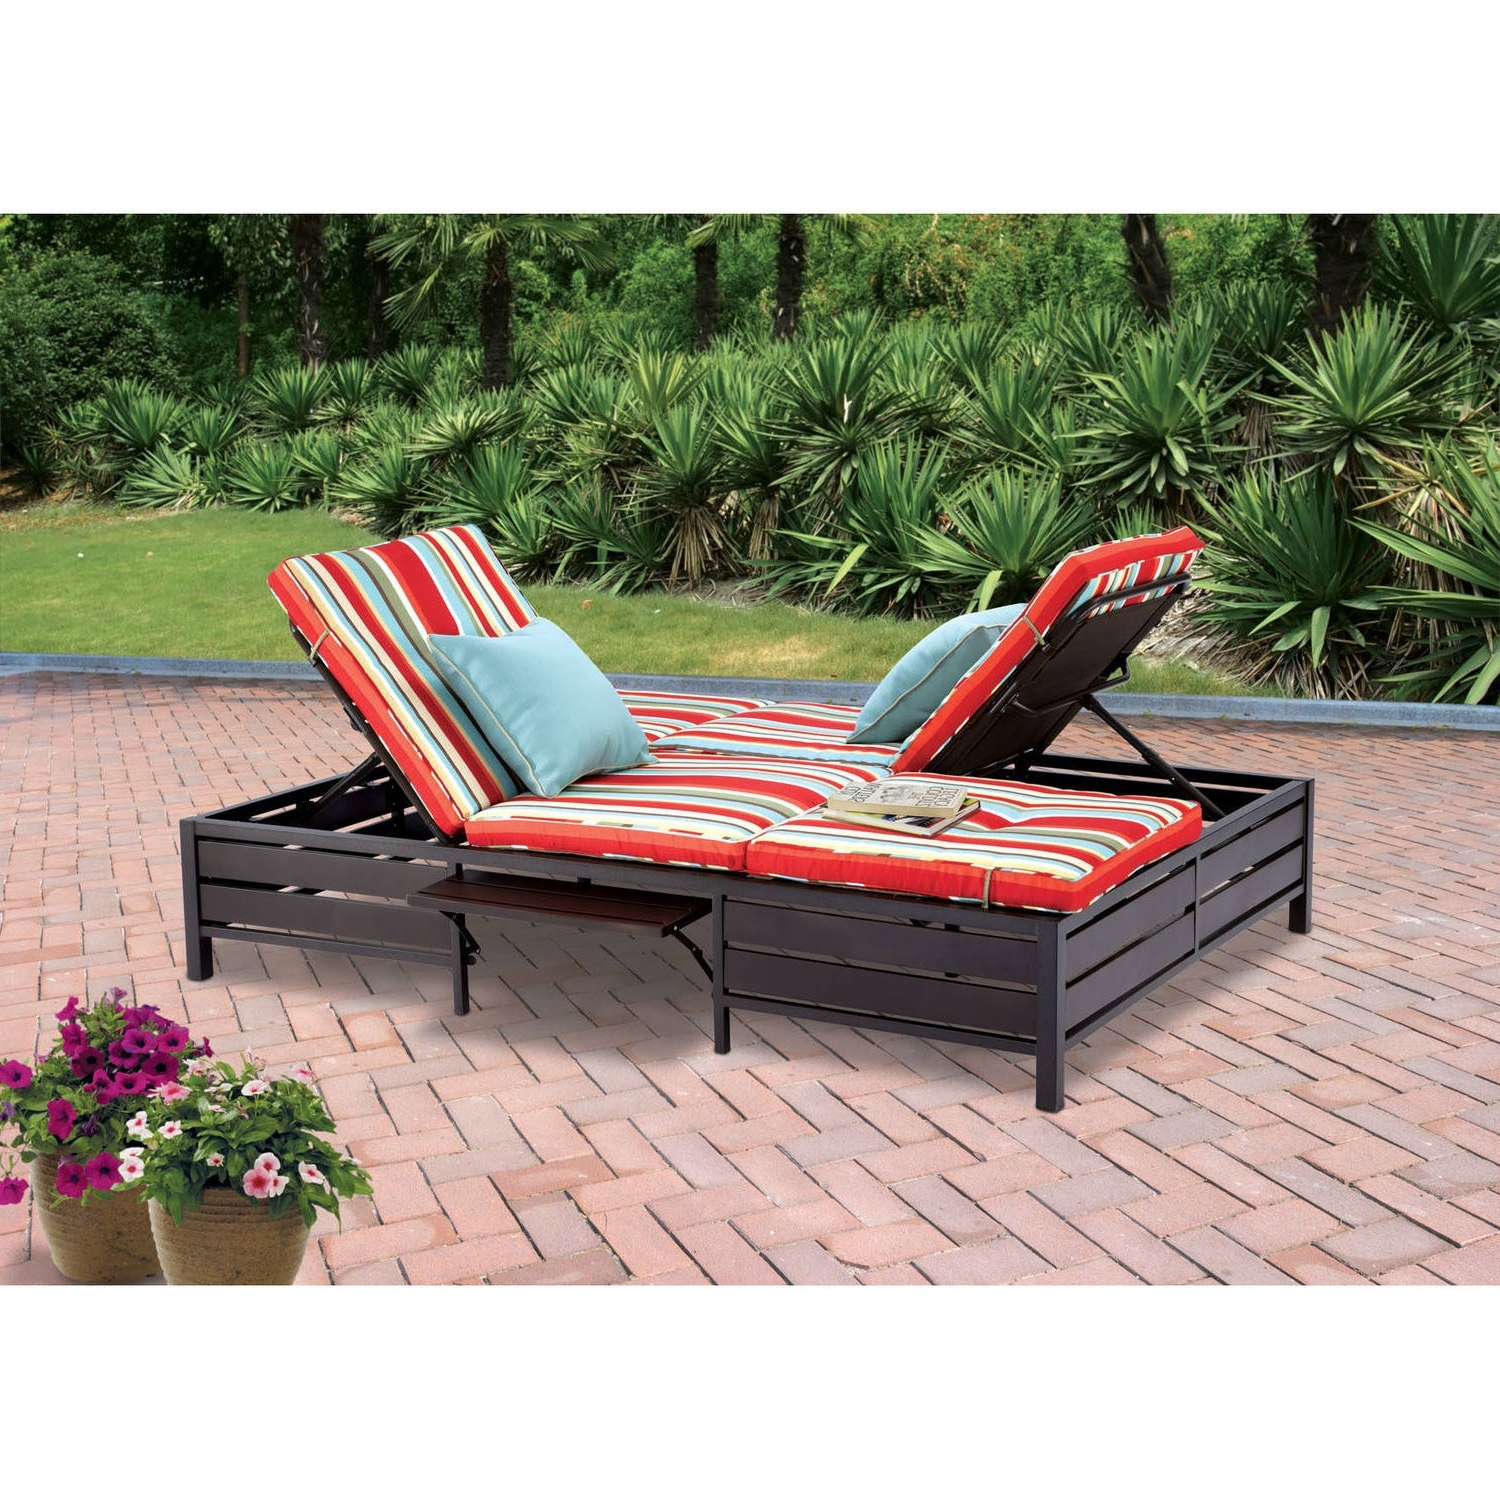 Fashionable Mainstays Outdoor Double Chaise Lounger, Stripe, Seats 2 – Walmart For Walmart Chaise Lounge Chairs (View 3 of 15)